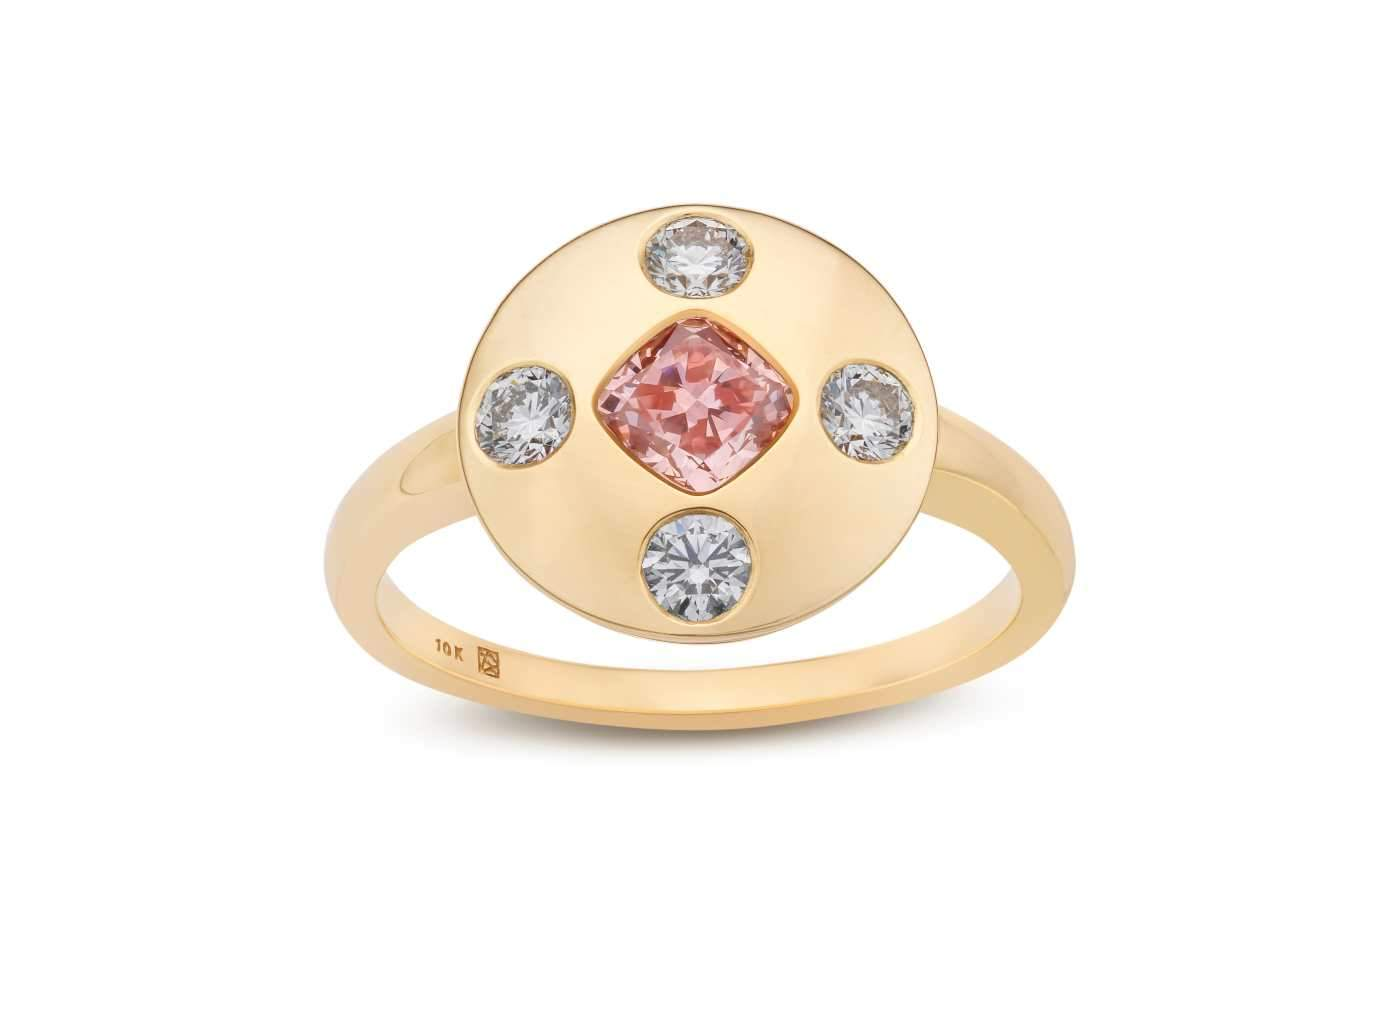 Front view of Muli Stone Signet Ring with pink and white diamonds